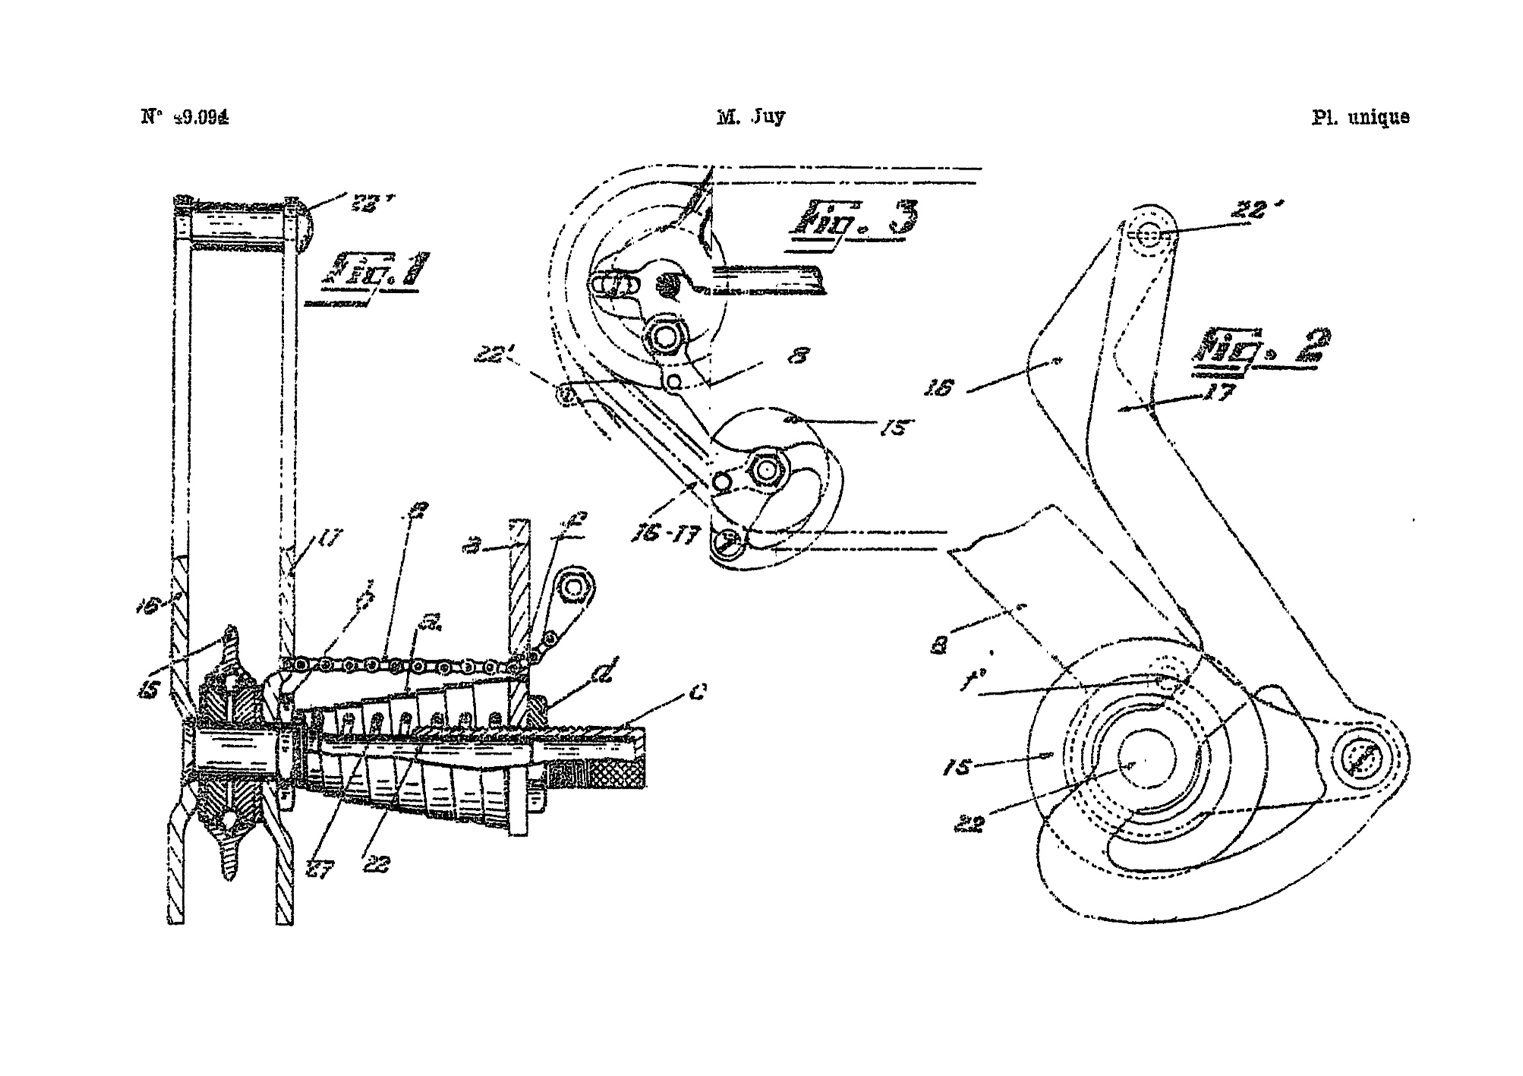 french-patent-791757-addition-49094-03-filtered